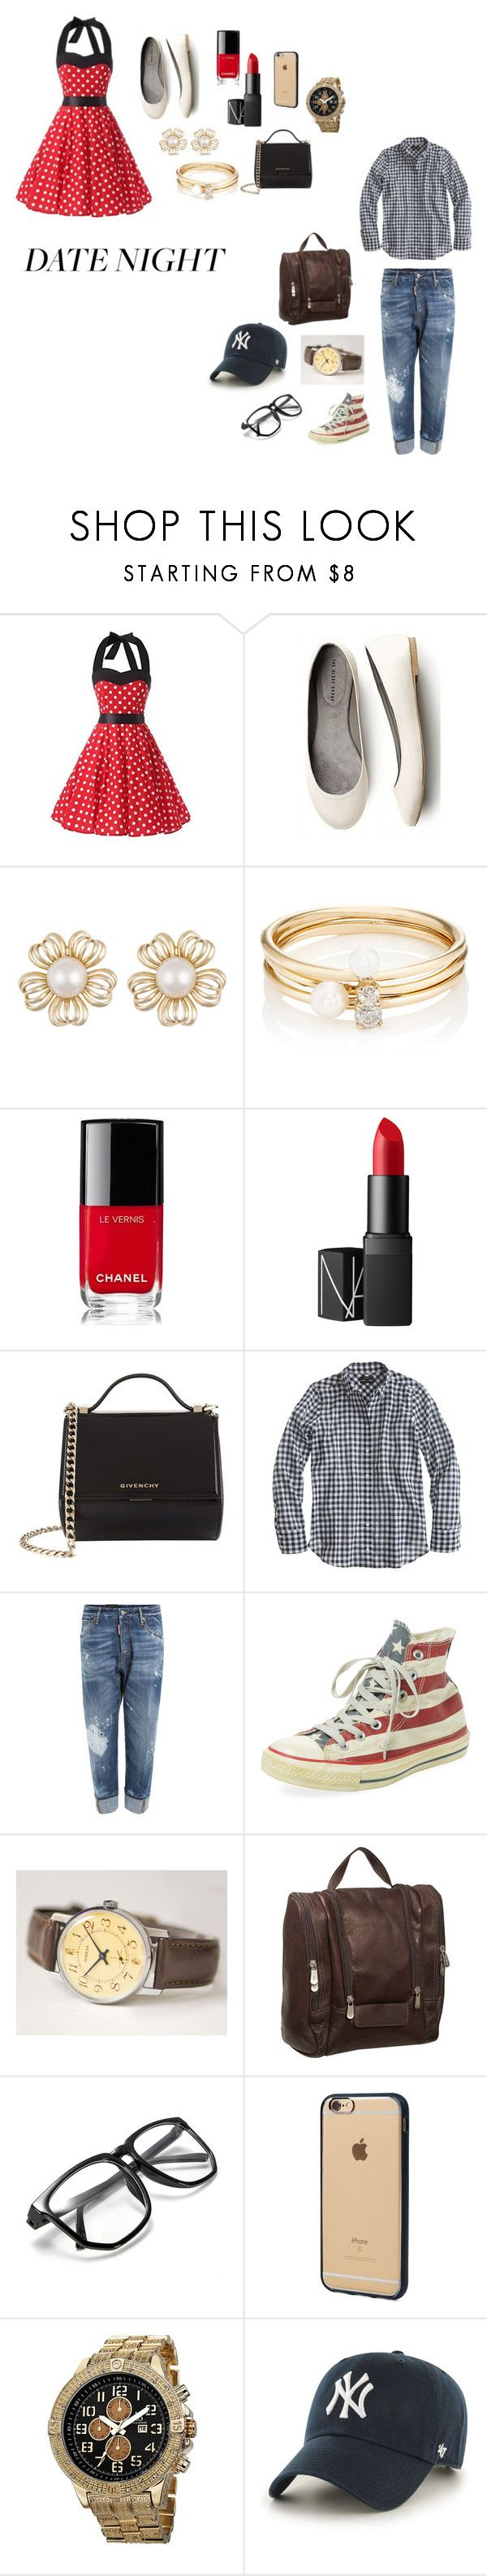 """""""Date Night"""" by kellygallagher-i ❤ liked on Polyvore featuring Loren Stewart, Chanel, NARS Cosmetics, Givenchy, J.Crew, Dsquared2, Converse, Piel Leather, Incase and Joshua & Sons"""